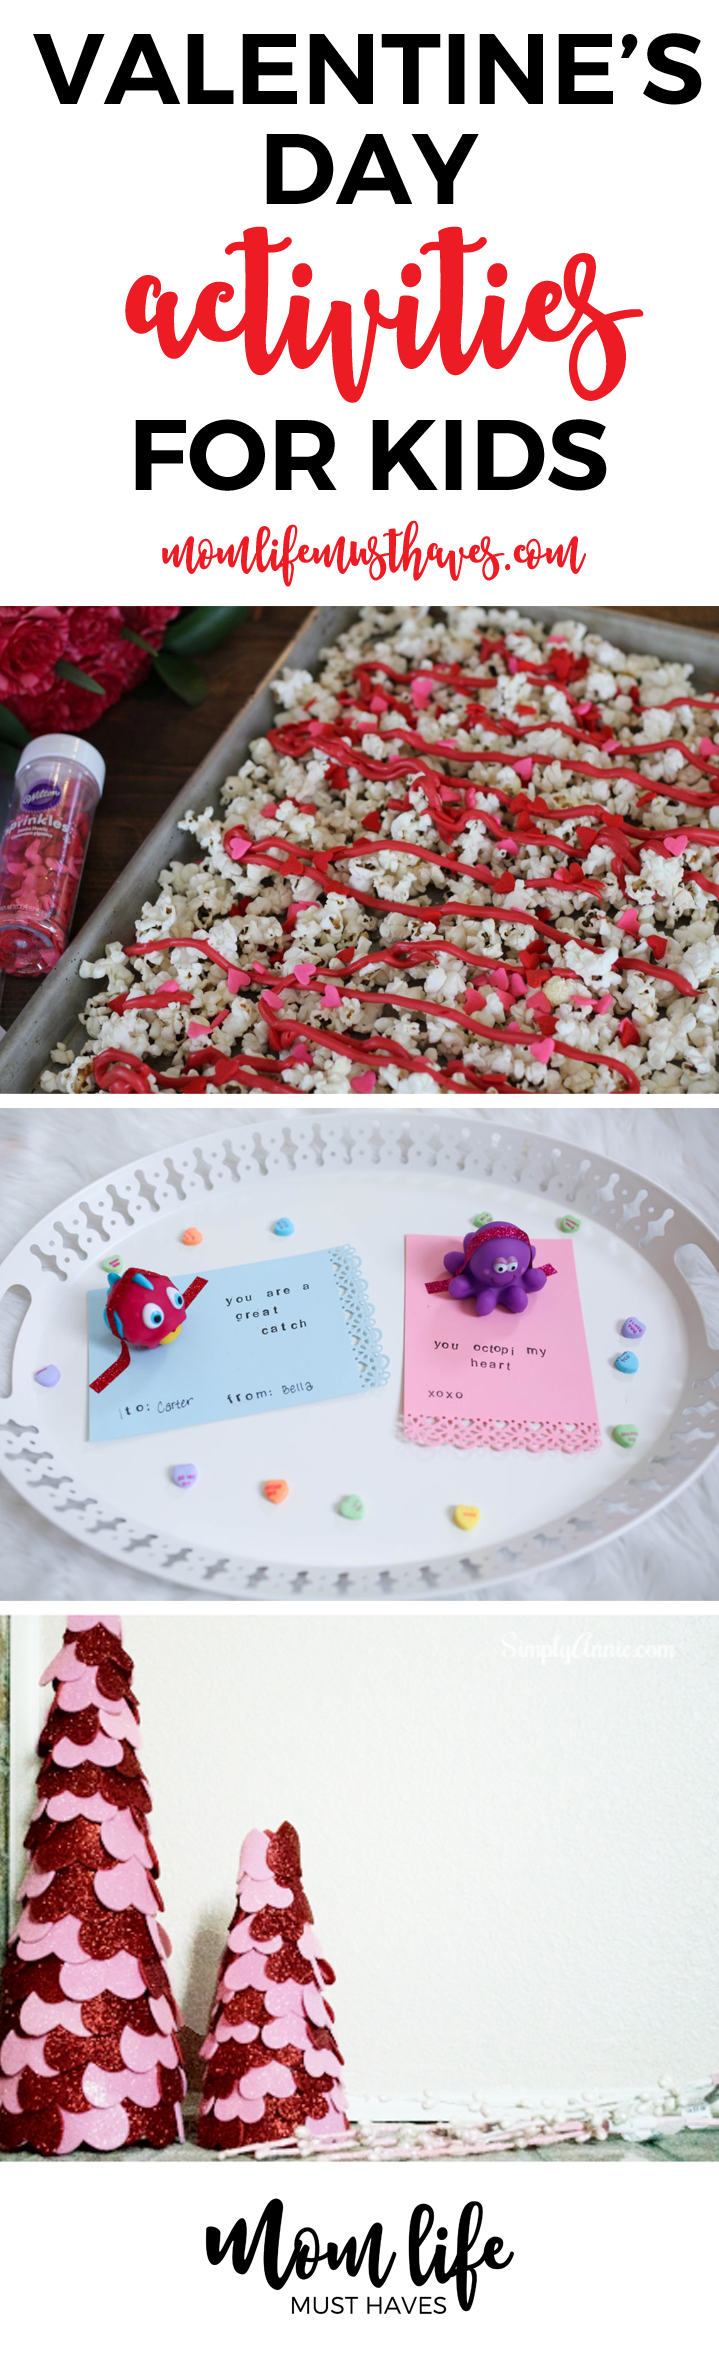 Valentine's Day activities for kids momlifemusthaves.com